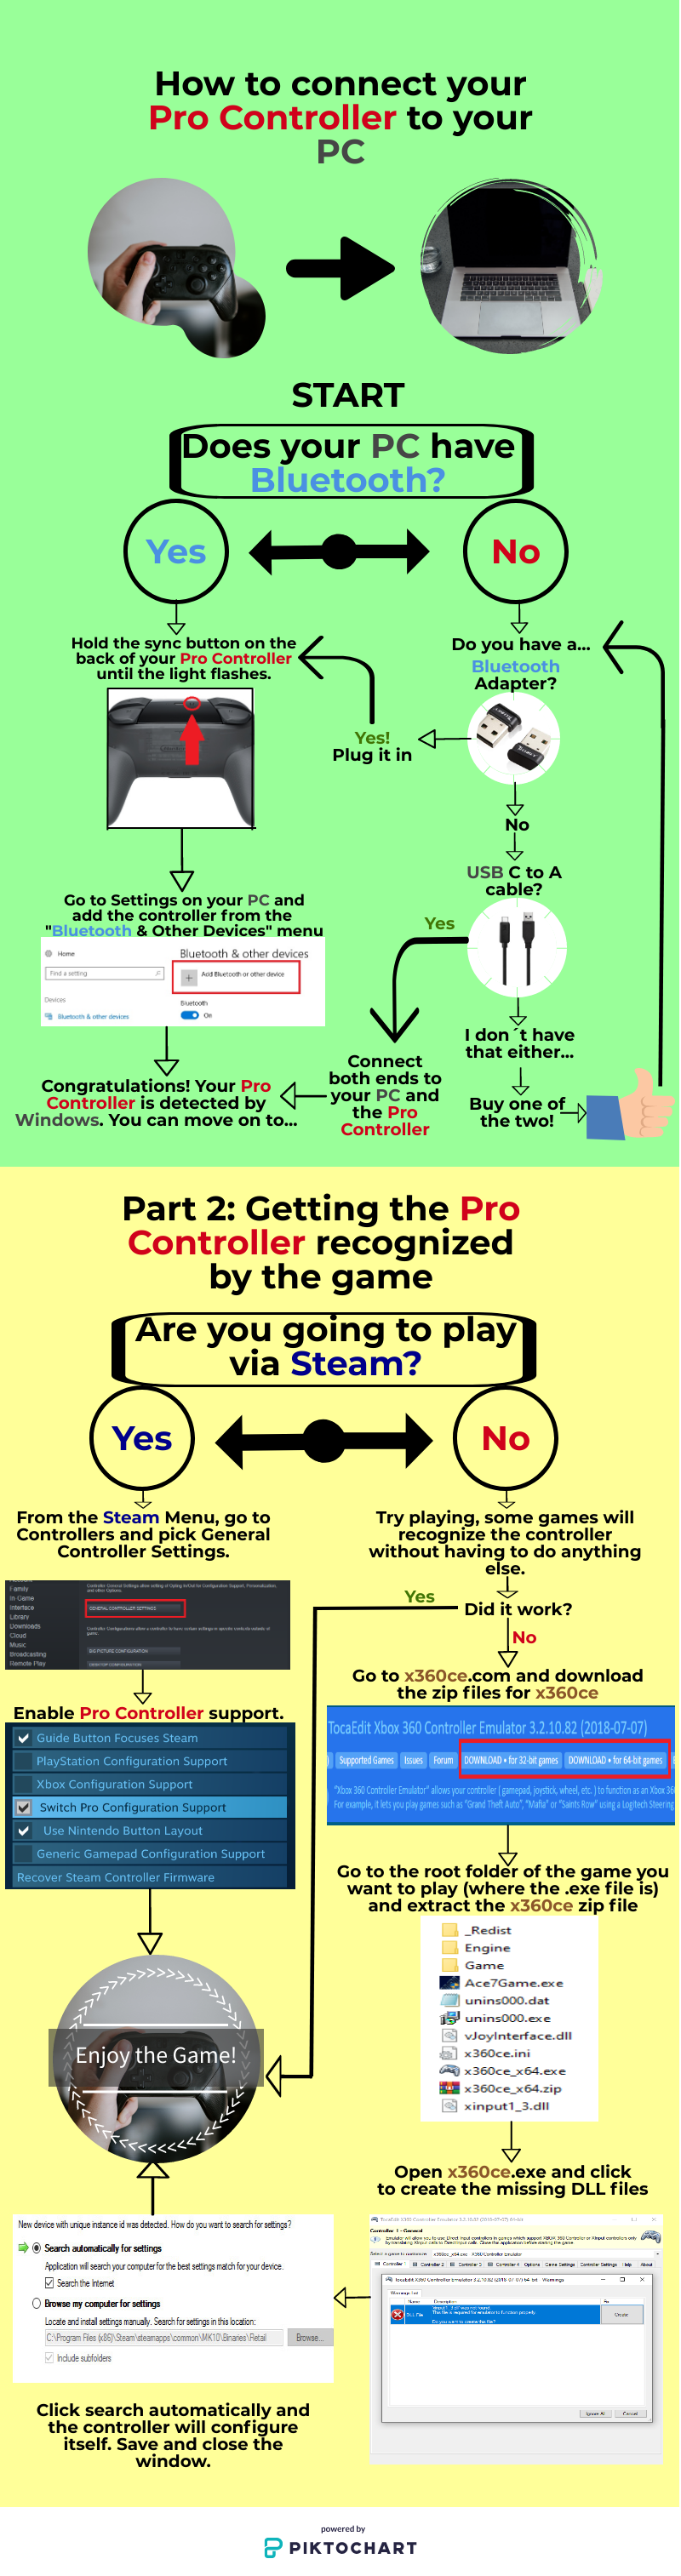 A flowchart infographic that explains how to connect a Nintendo Pro Controller to a computer that is running windows. The guide explains the process for PC´s with and without Bluetooth, and for games that are played in and outside of Steam.